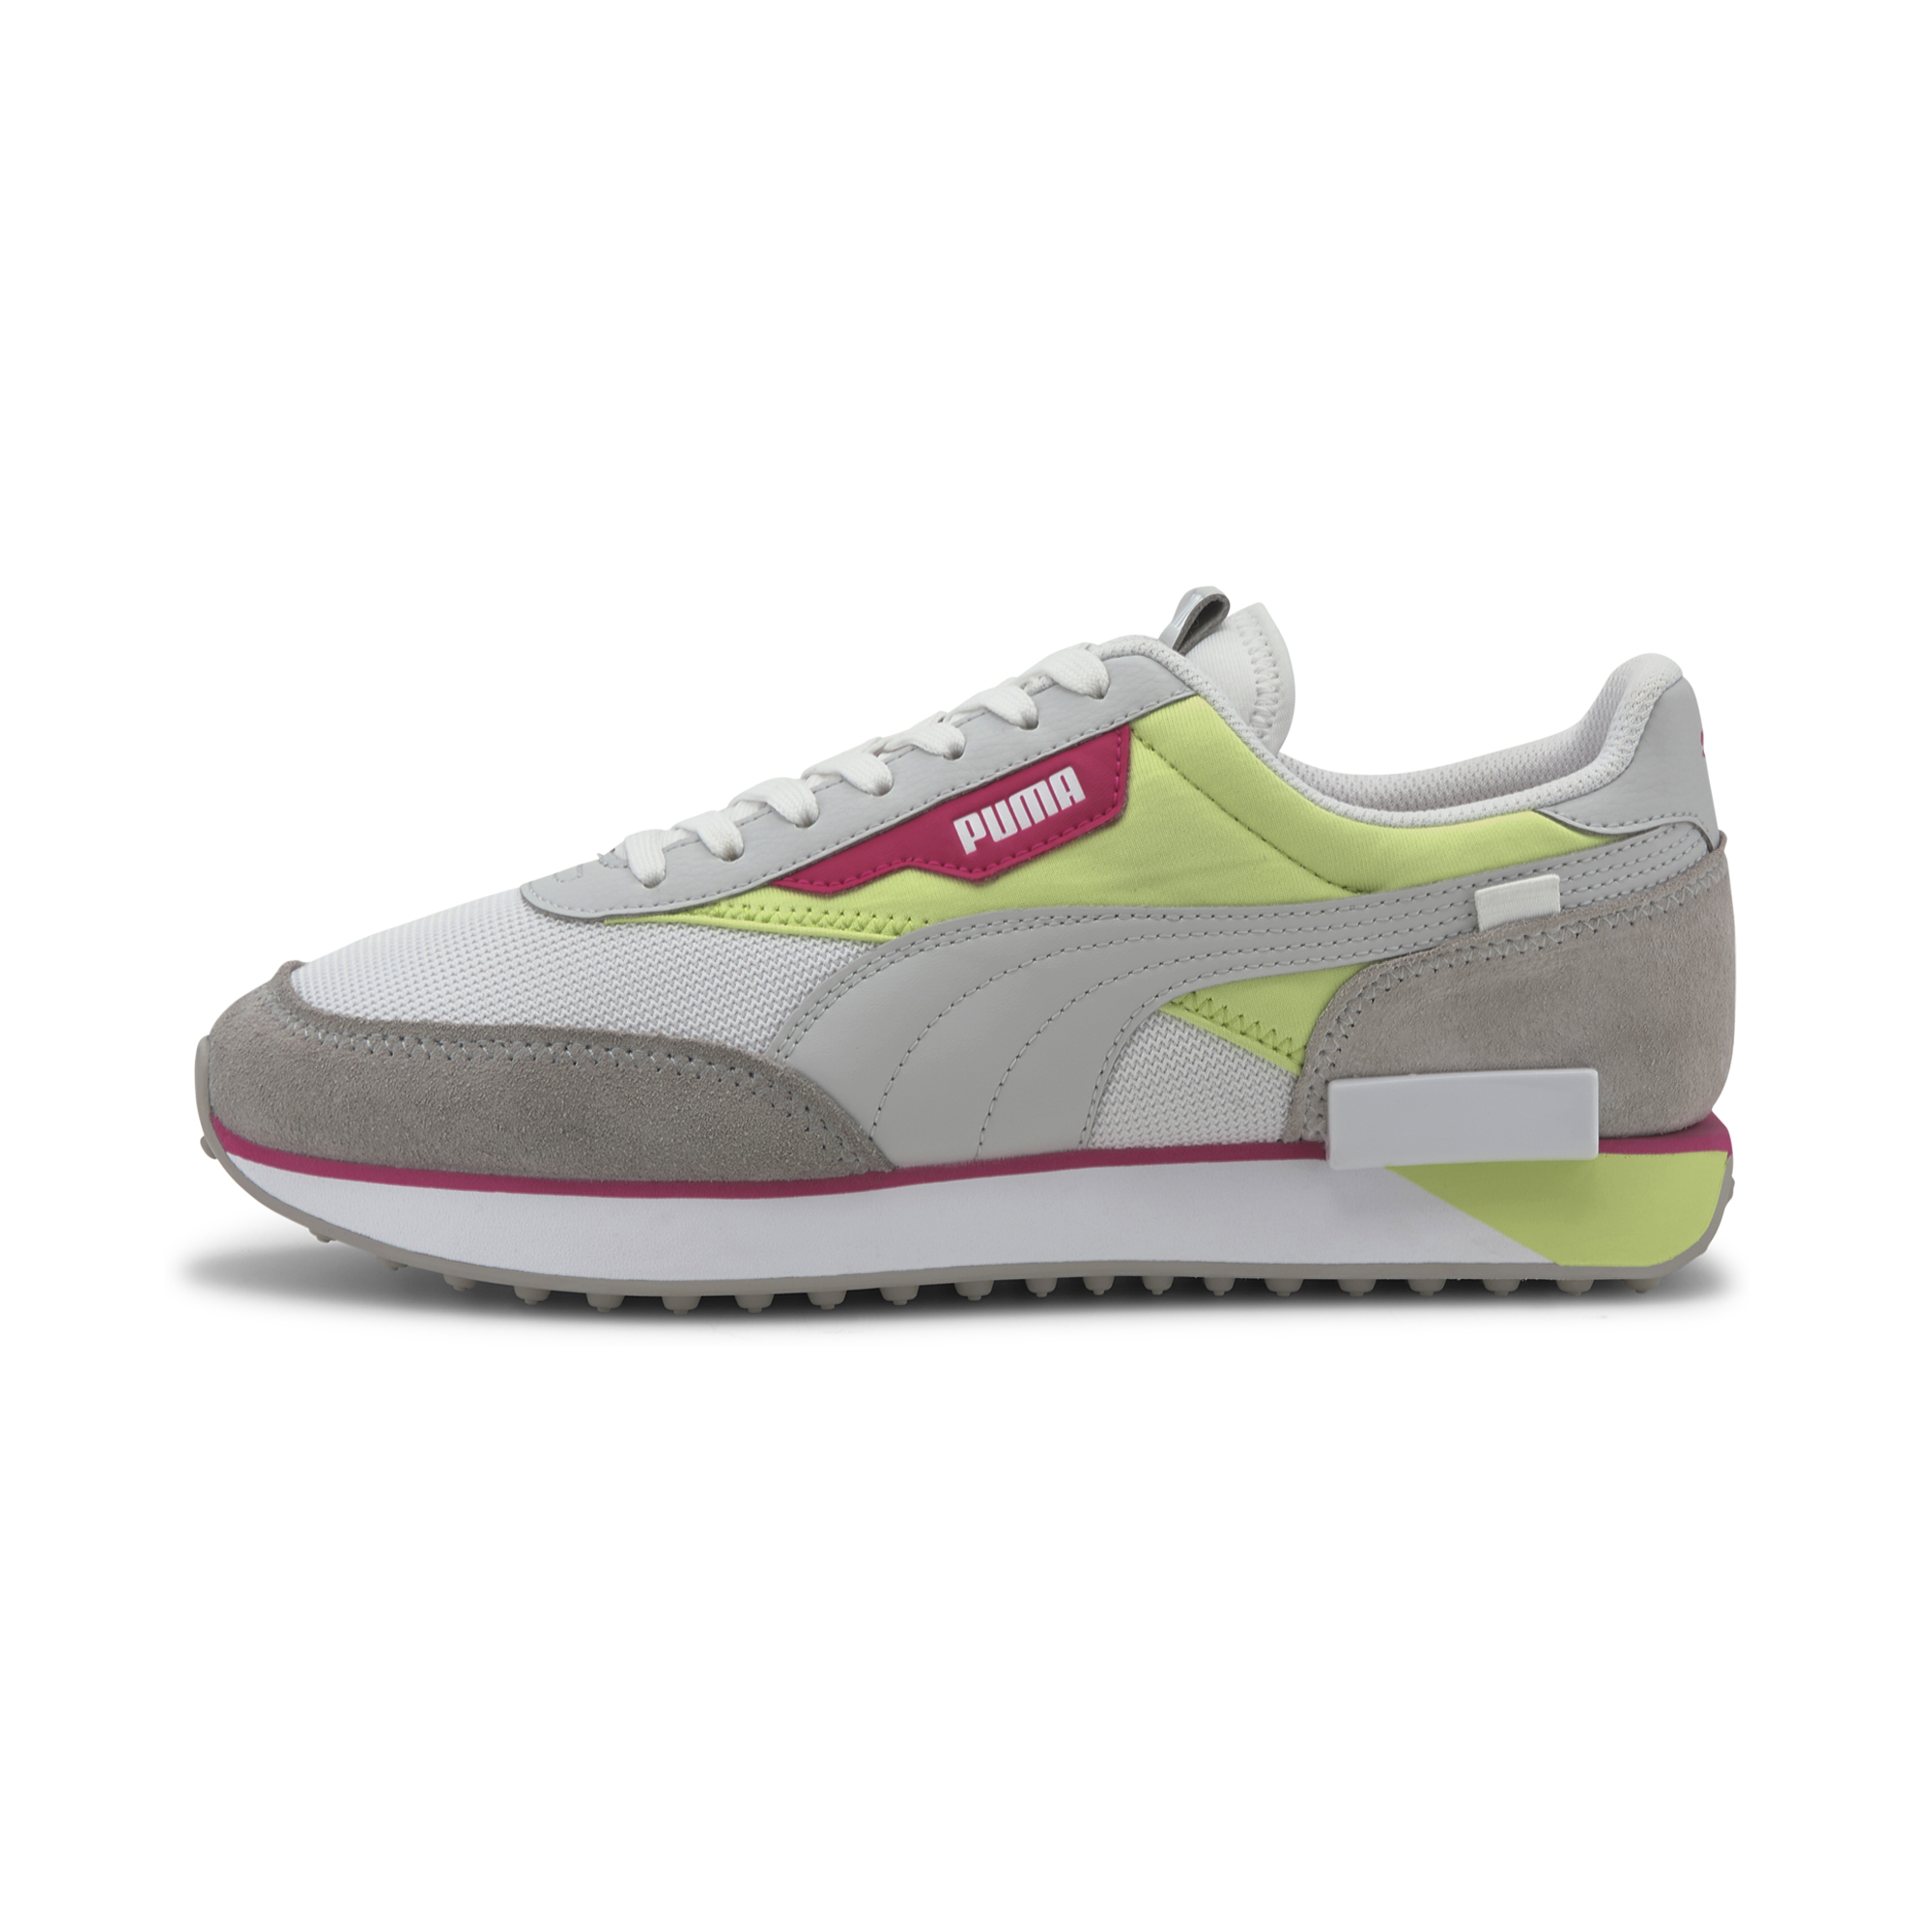 Puma Future Rider Neon Play Grey Violet-Sharp Puma Green, Purple